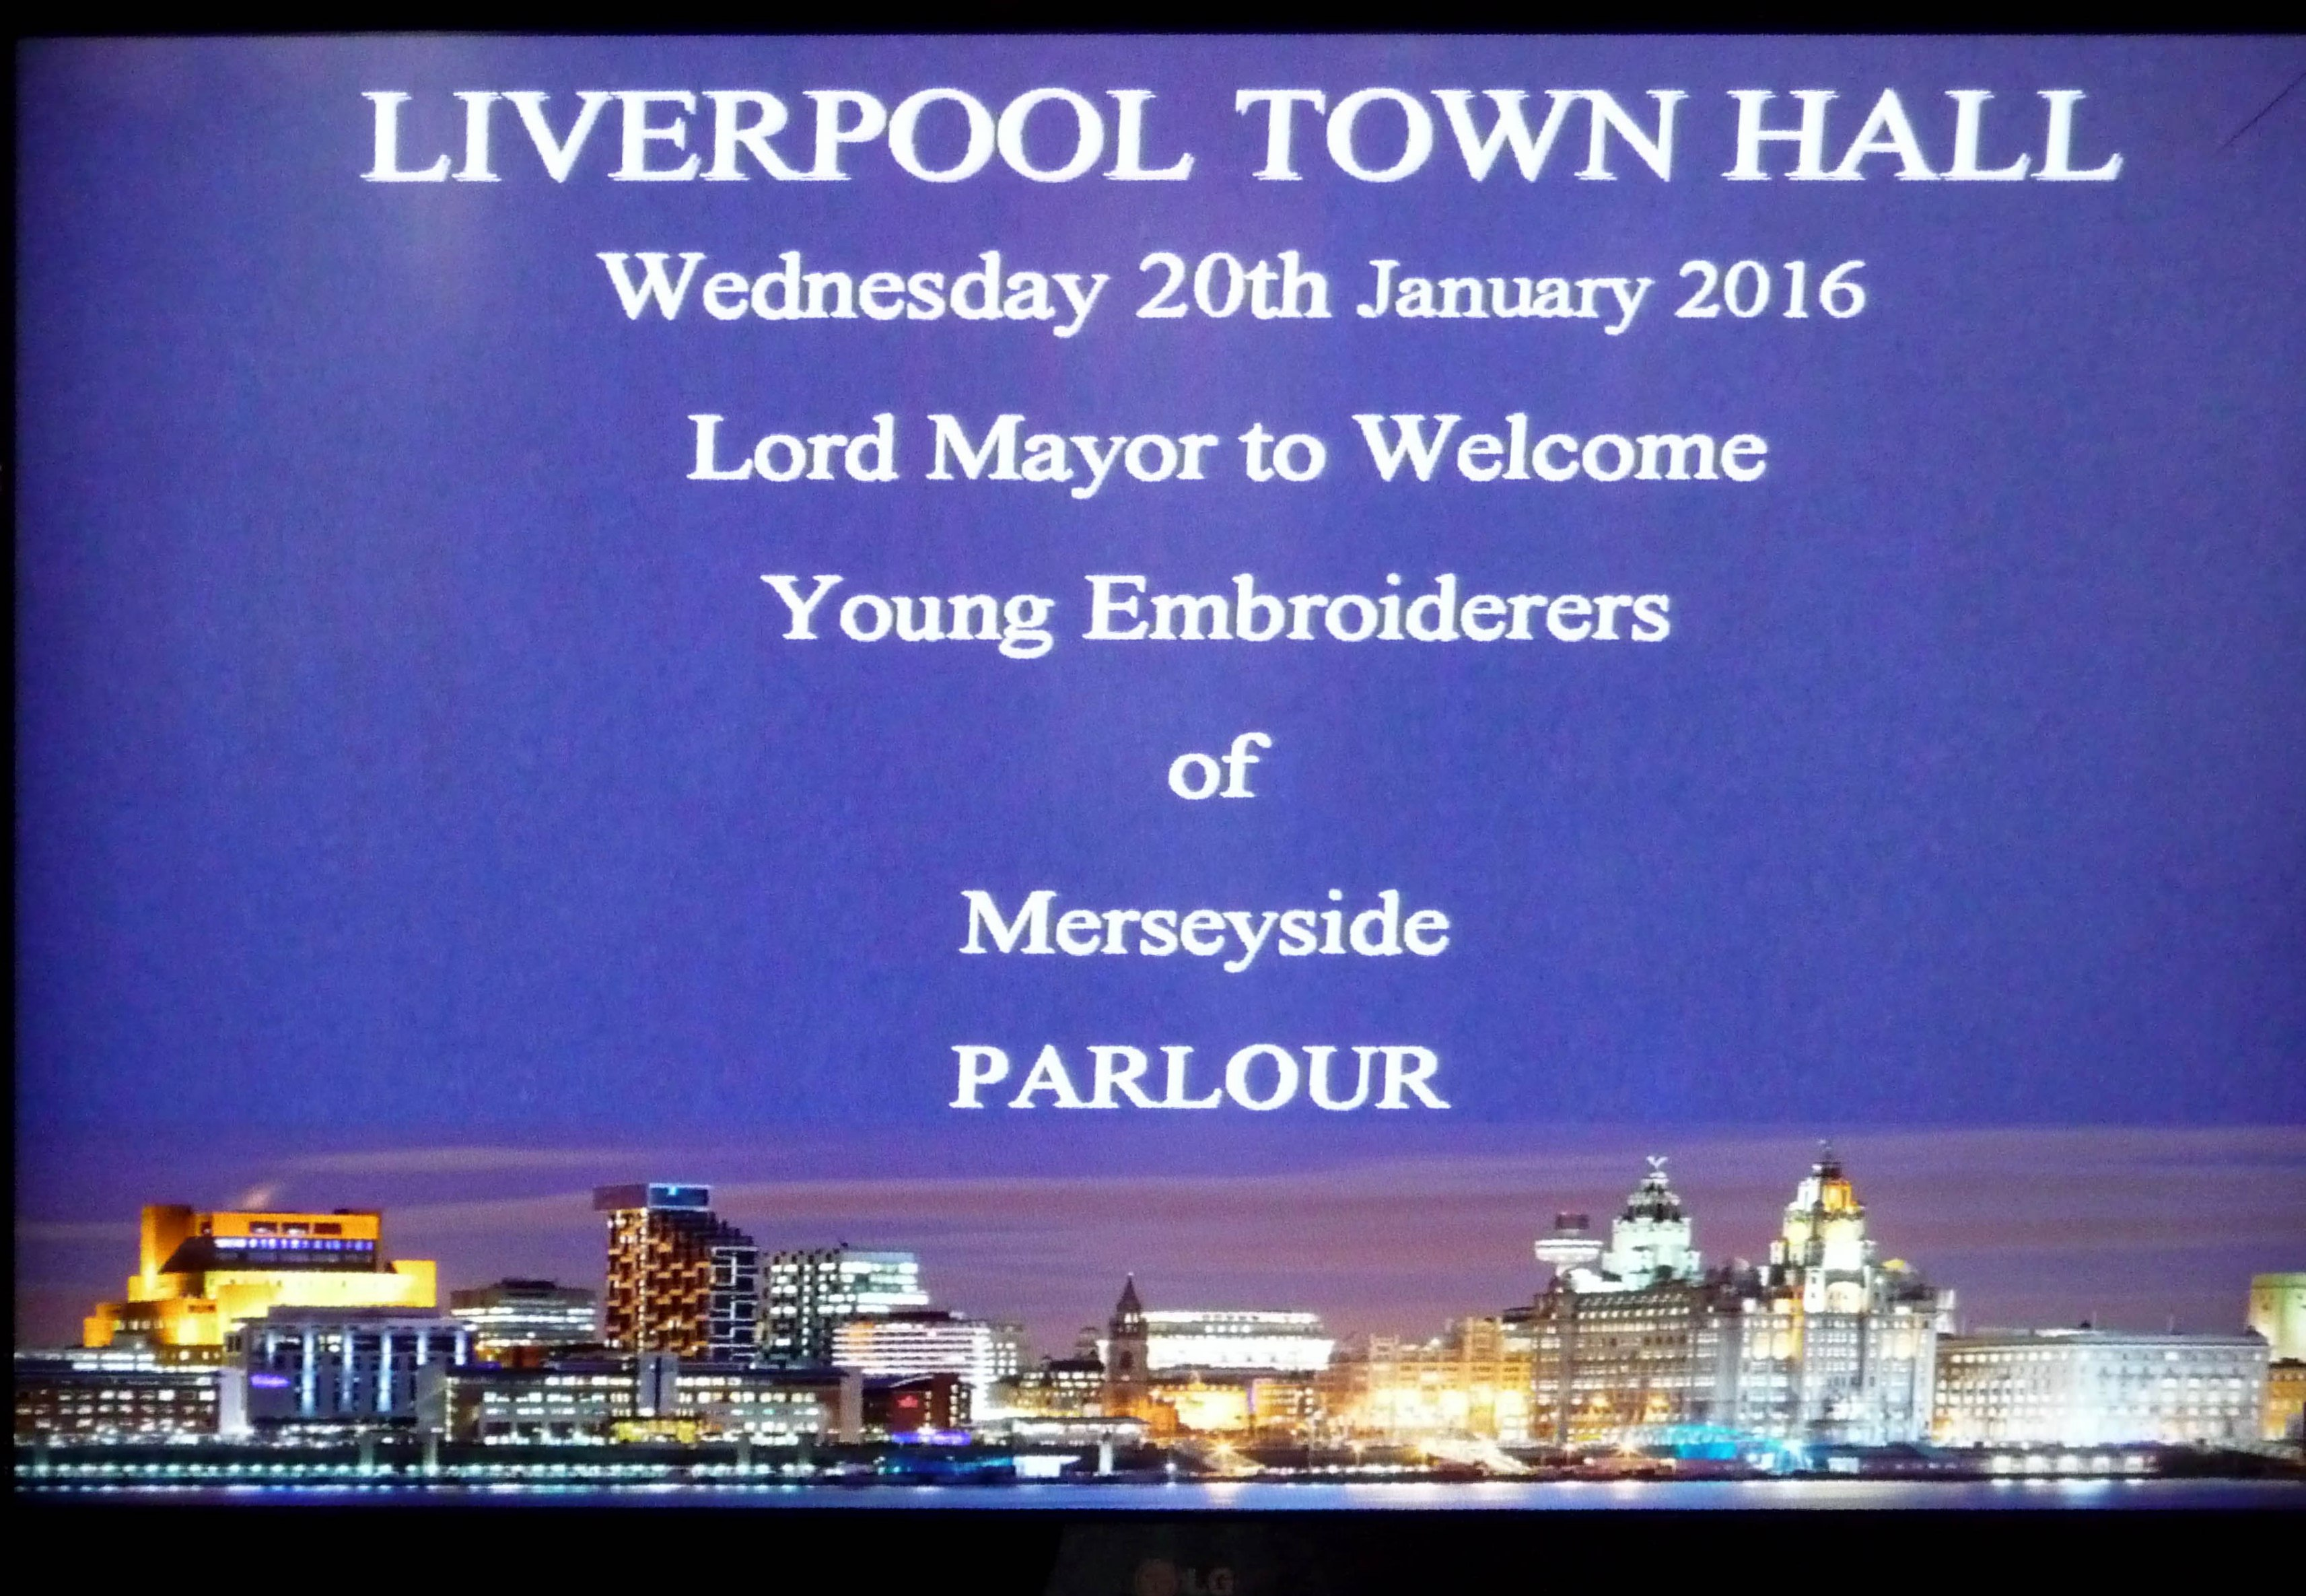 Merseyside YE had thier names on the TV screen when they went to meet the Lord Mayor of Liverpool, January 2016